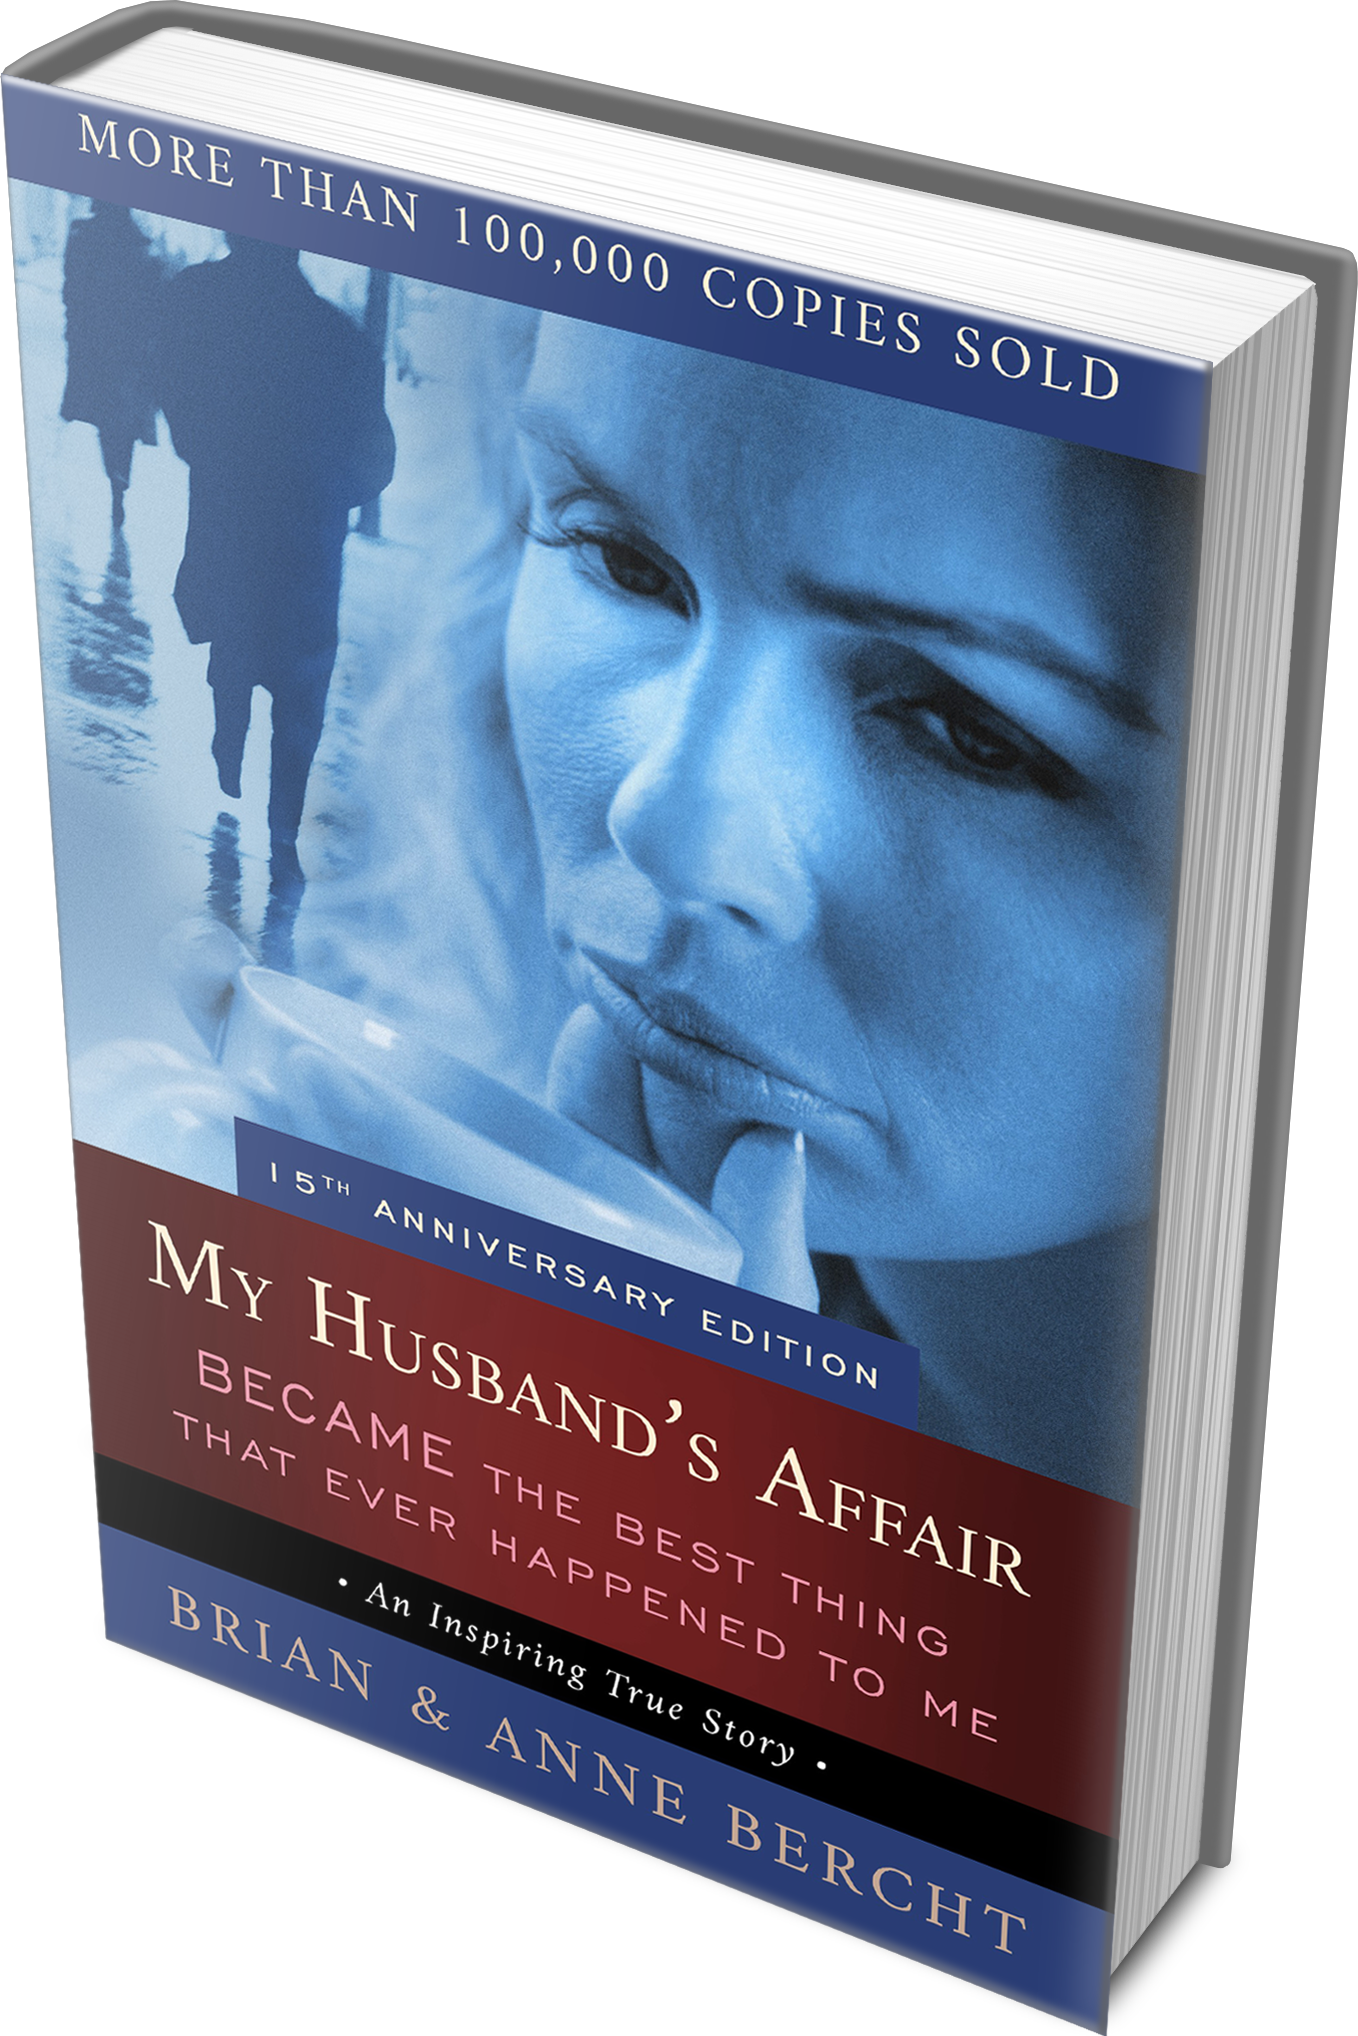 Anne Bercht book My Husband's Affair Became The Best Thing That Ever Happened To Me